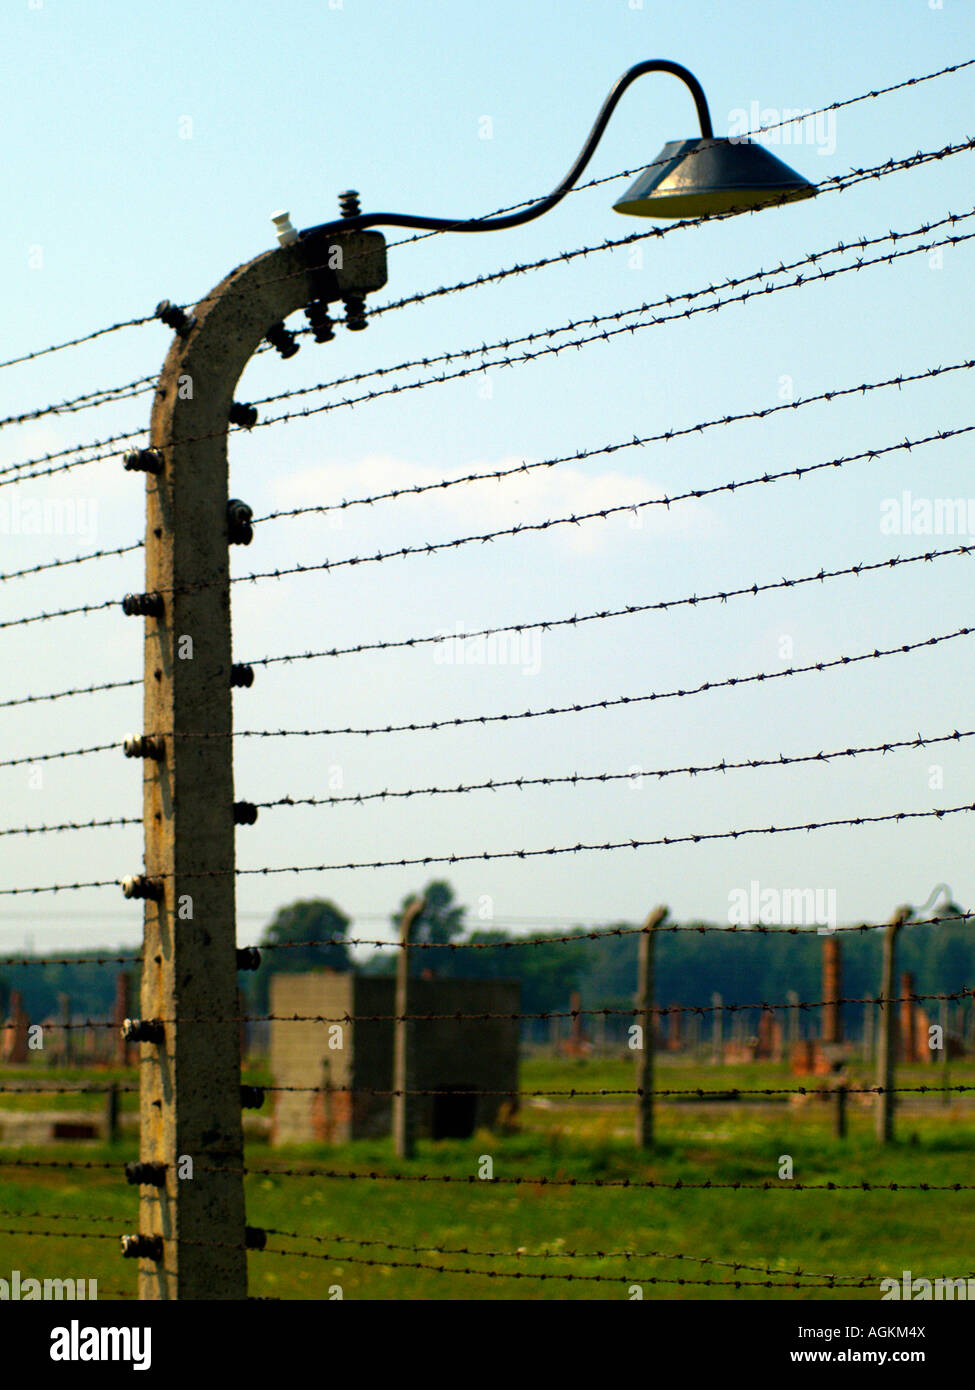 Barbed wire, barracks, and empty fields and ruins at the Auschwitz concentration camp outside of Krakow, Poland. - Stock Image